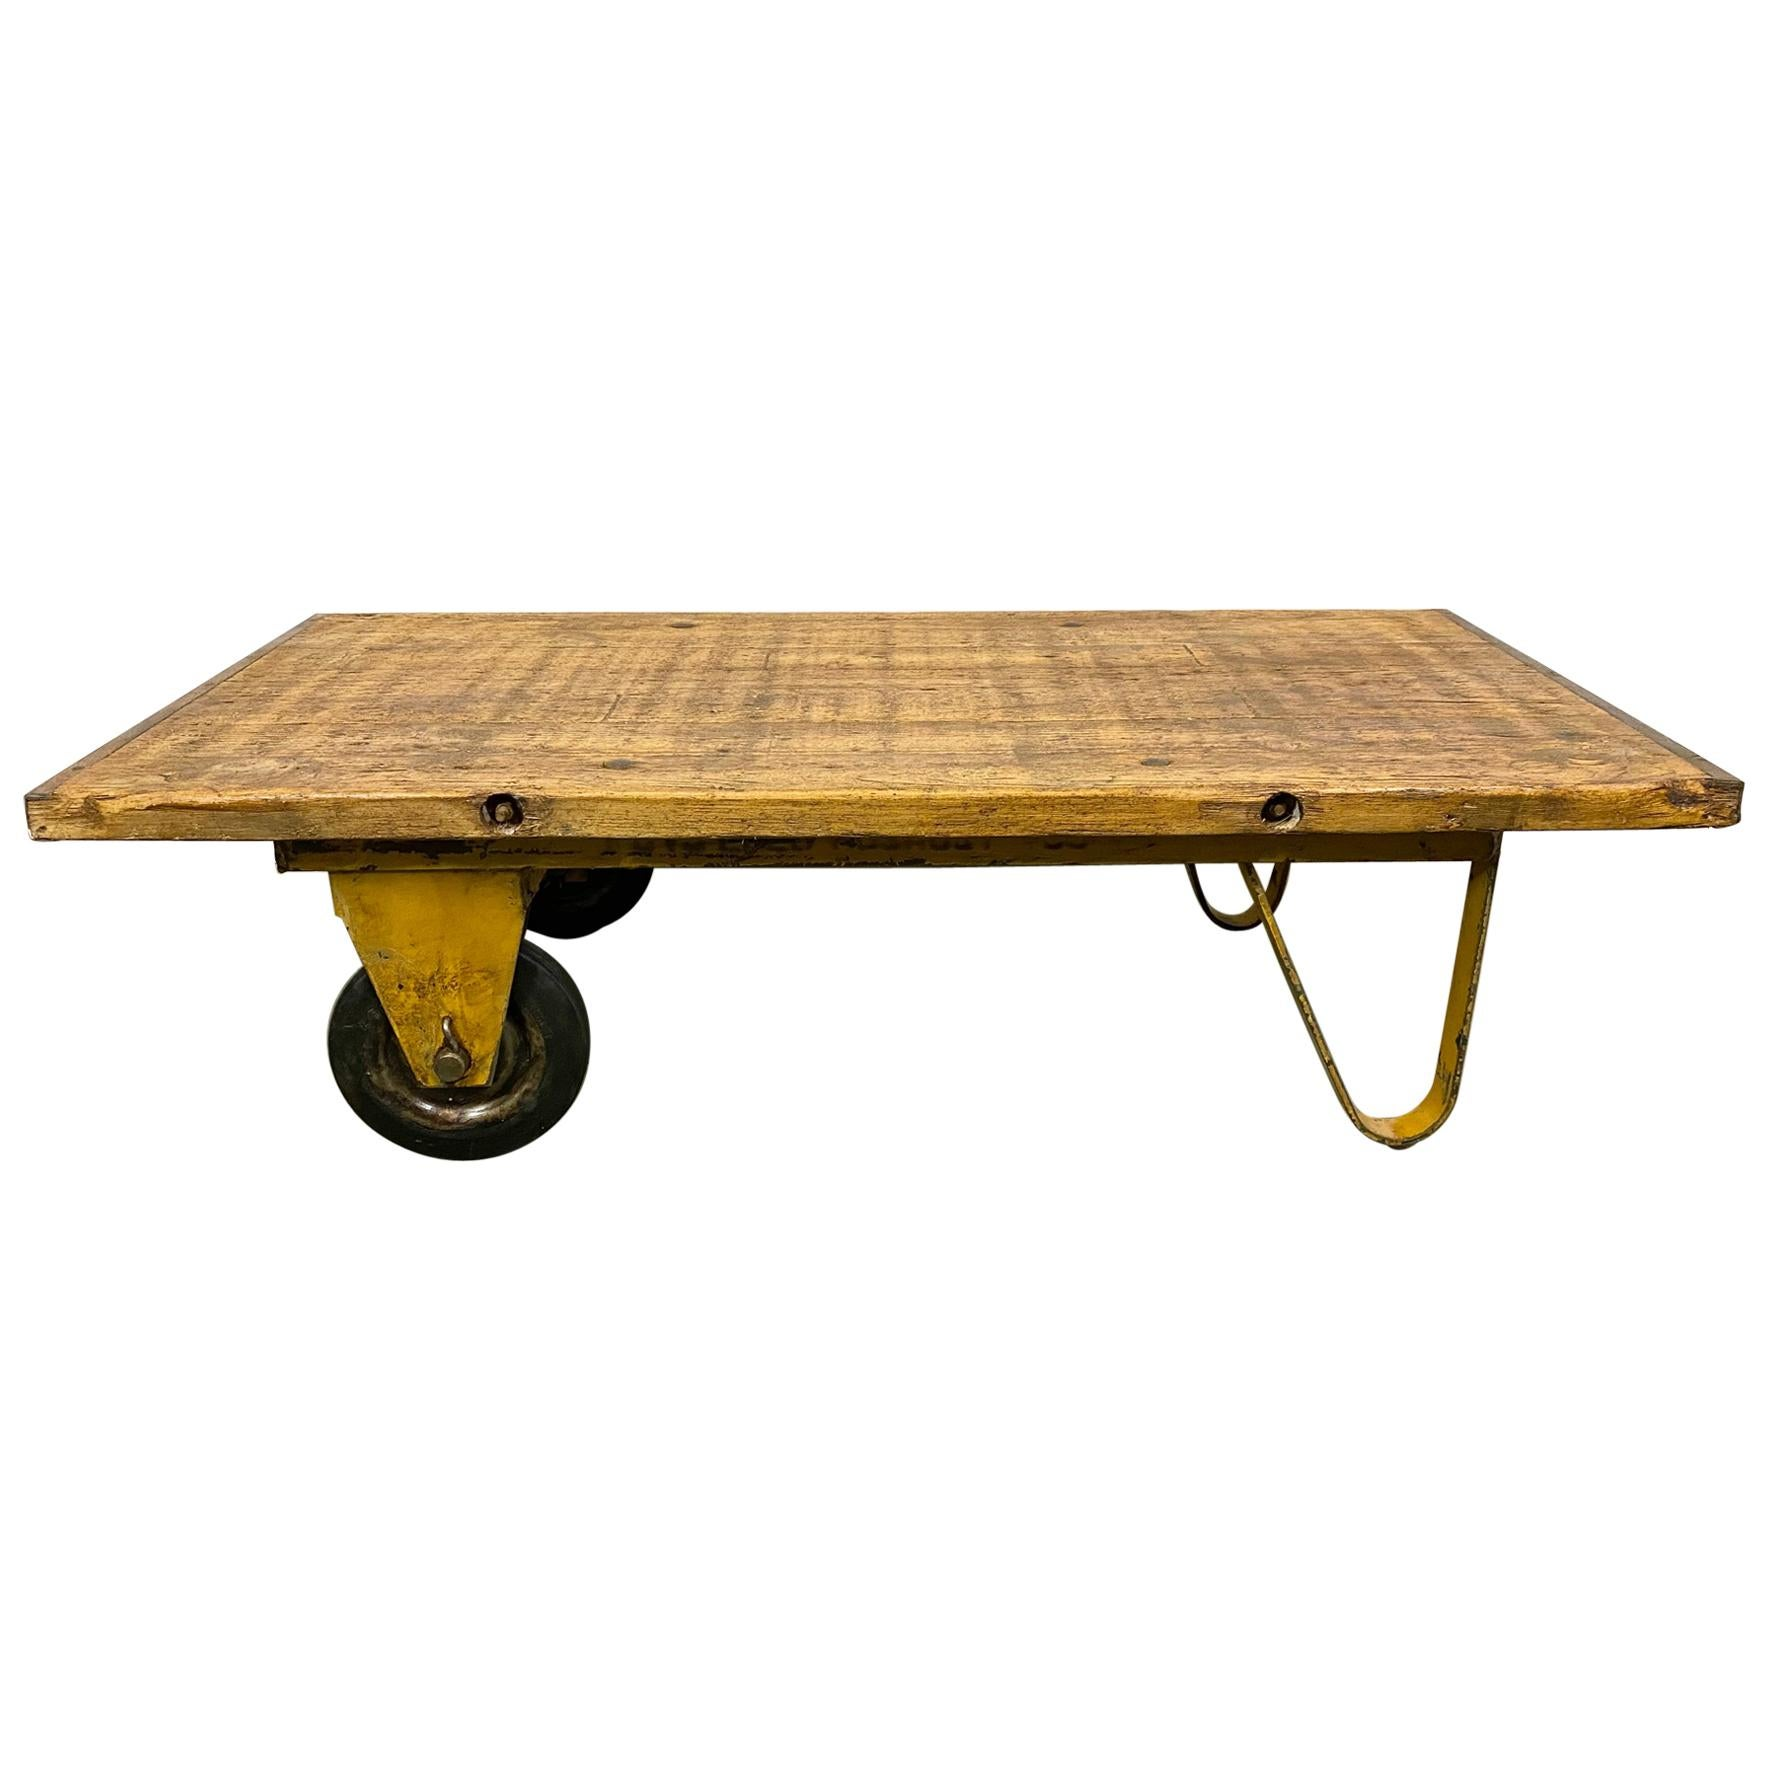 Yellow Industrial Coffee Table Cart, 1960s